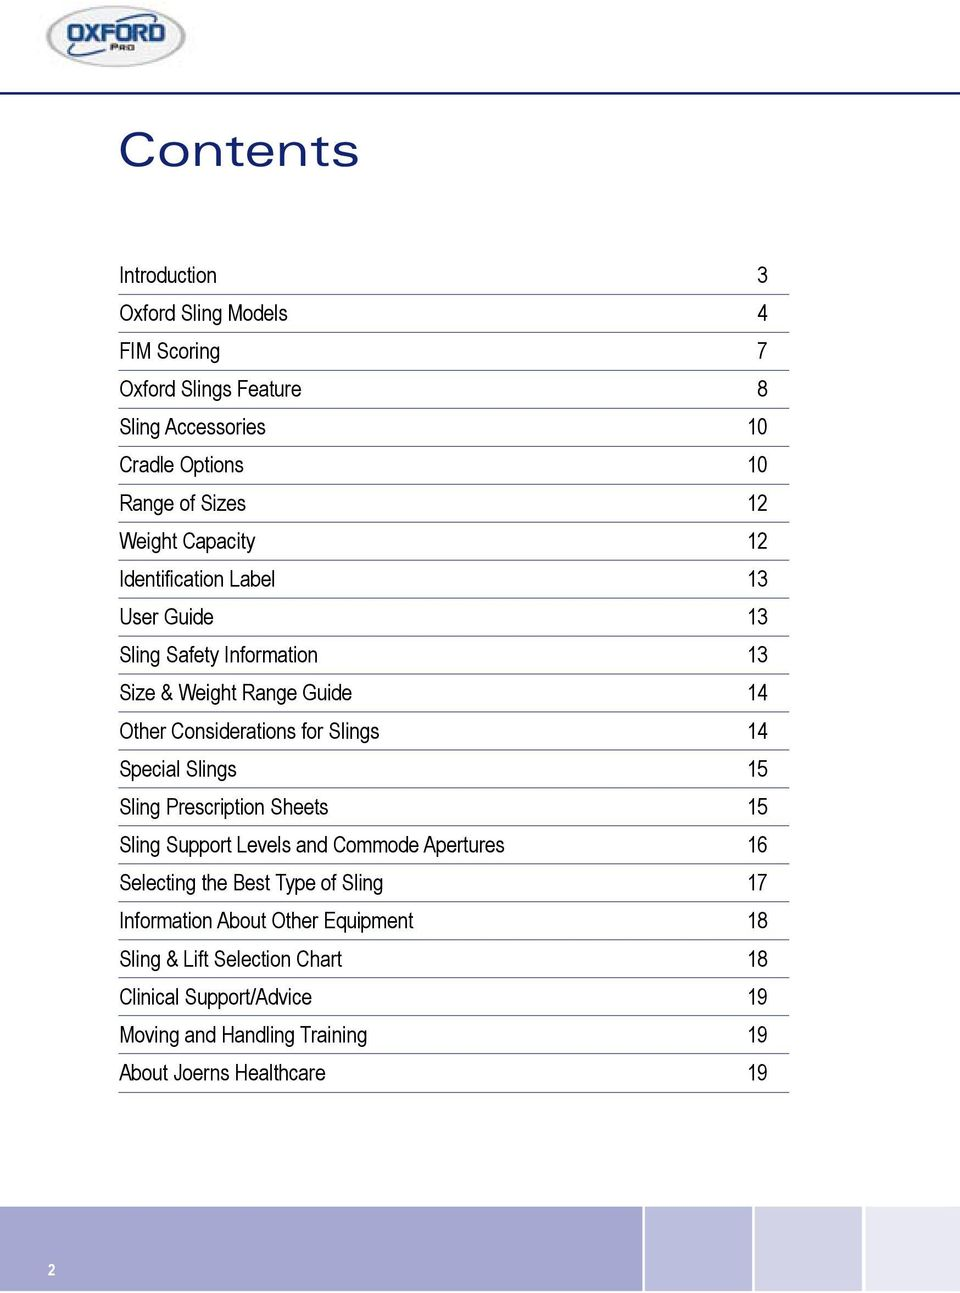 Slings 14 Special Slings 15 Sling Prescription Sheets 15 Sling Support  Levels and Commode Apertures 16